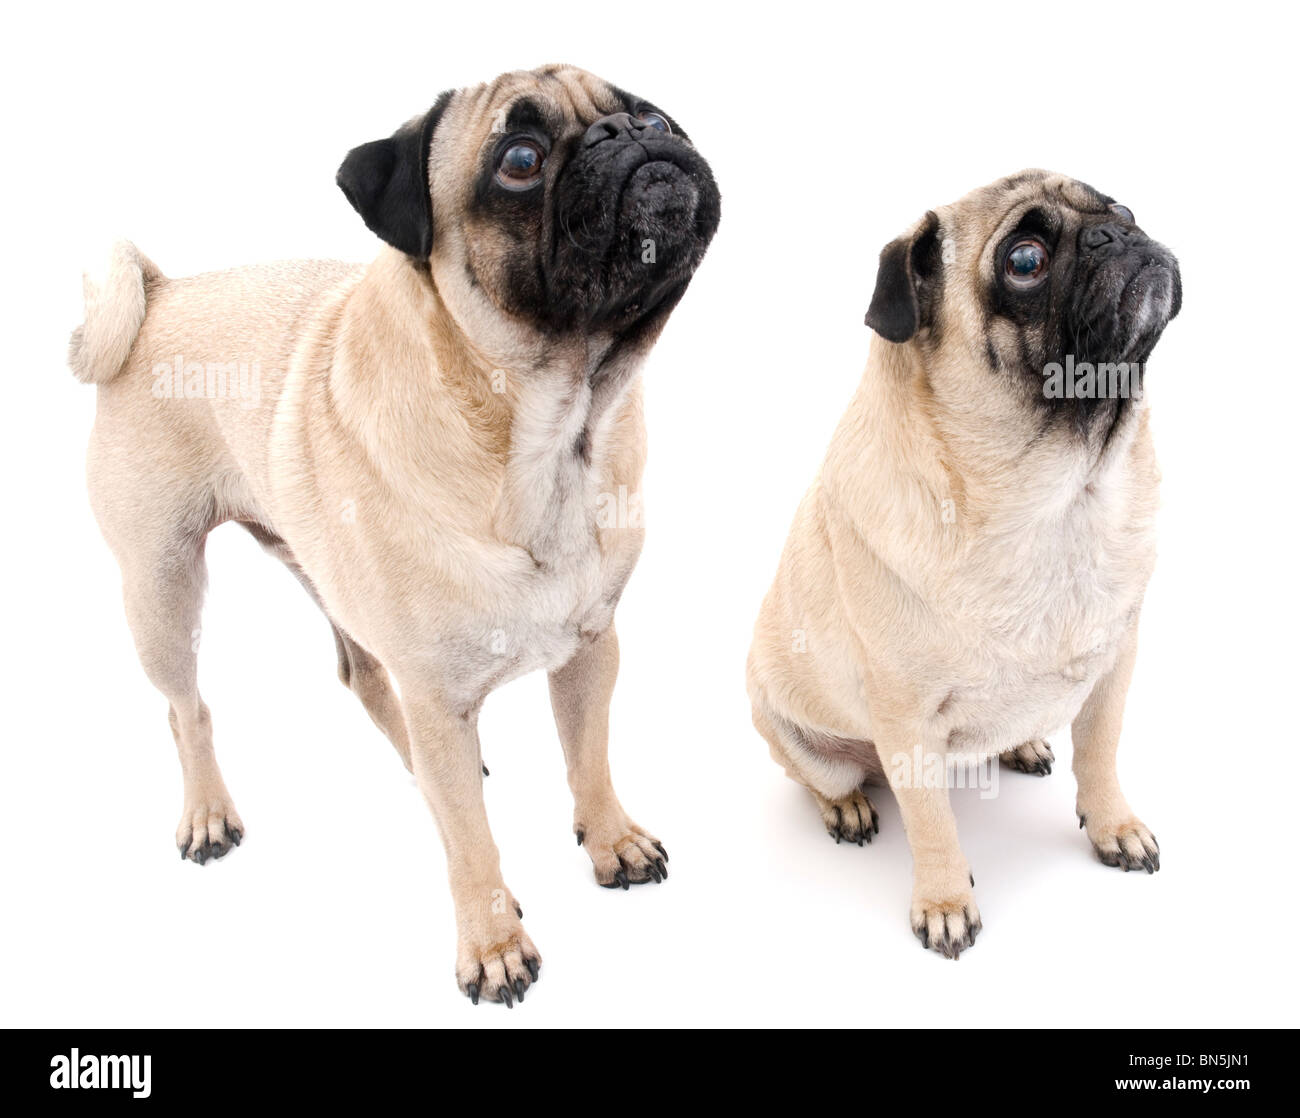 Two Pugs Looking Up, Isolated on White Background. - Stock Image